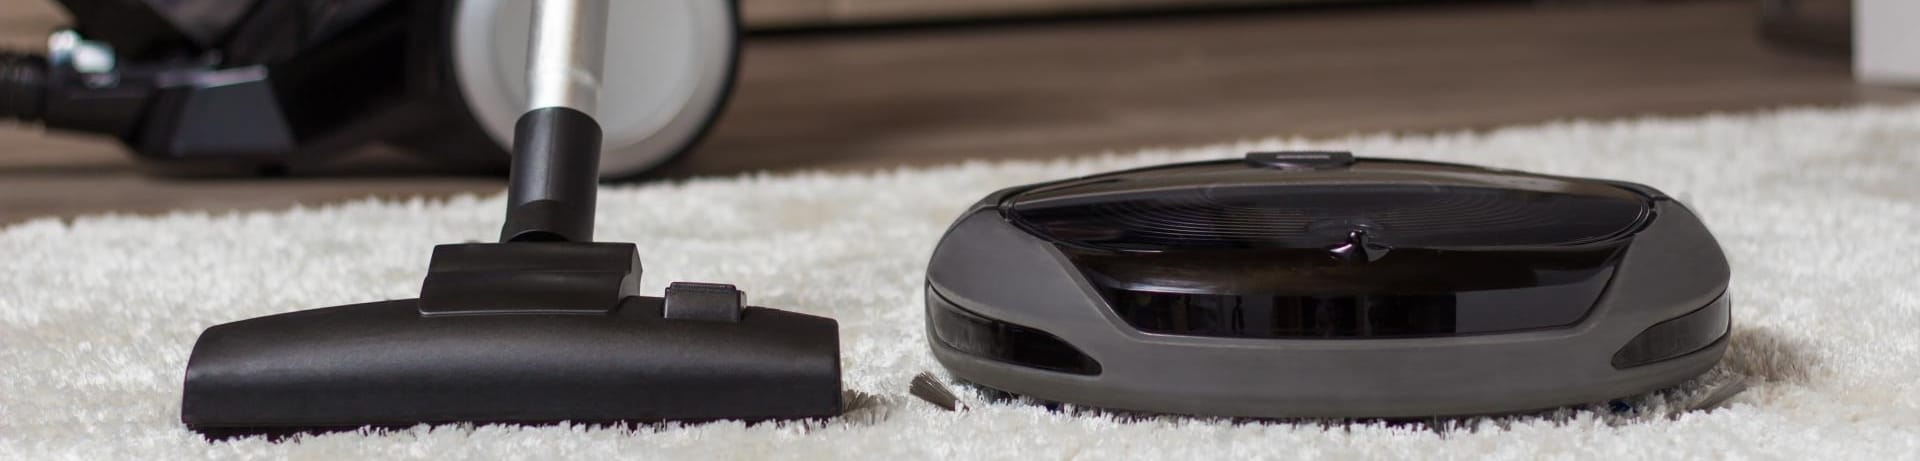 What is the Best Vacuum Cleaner Type for Your Needs?